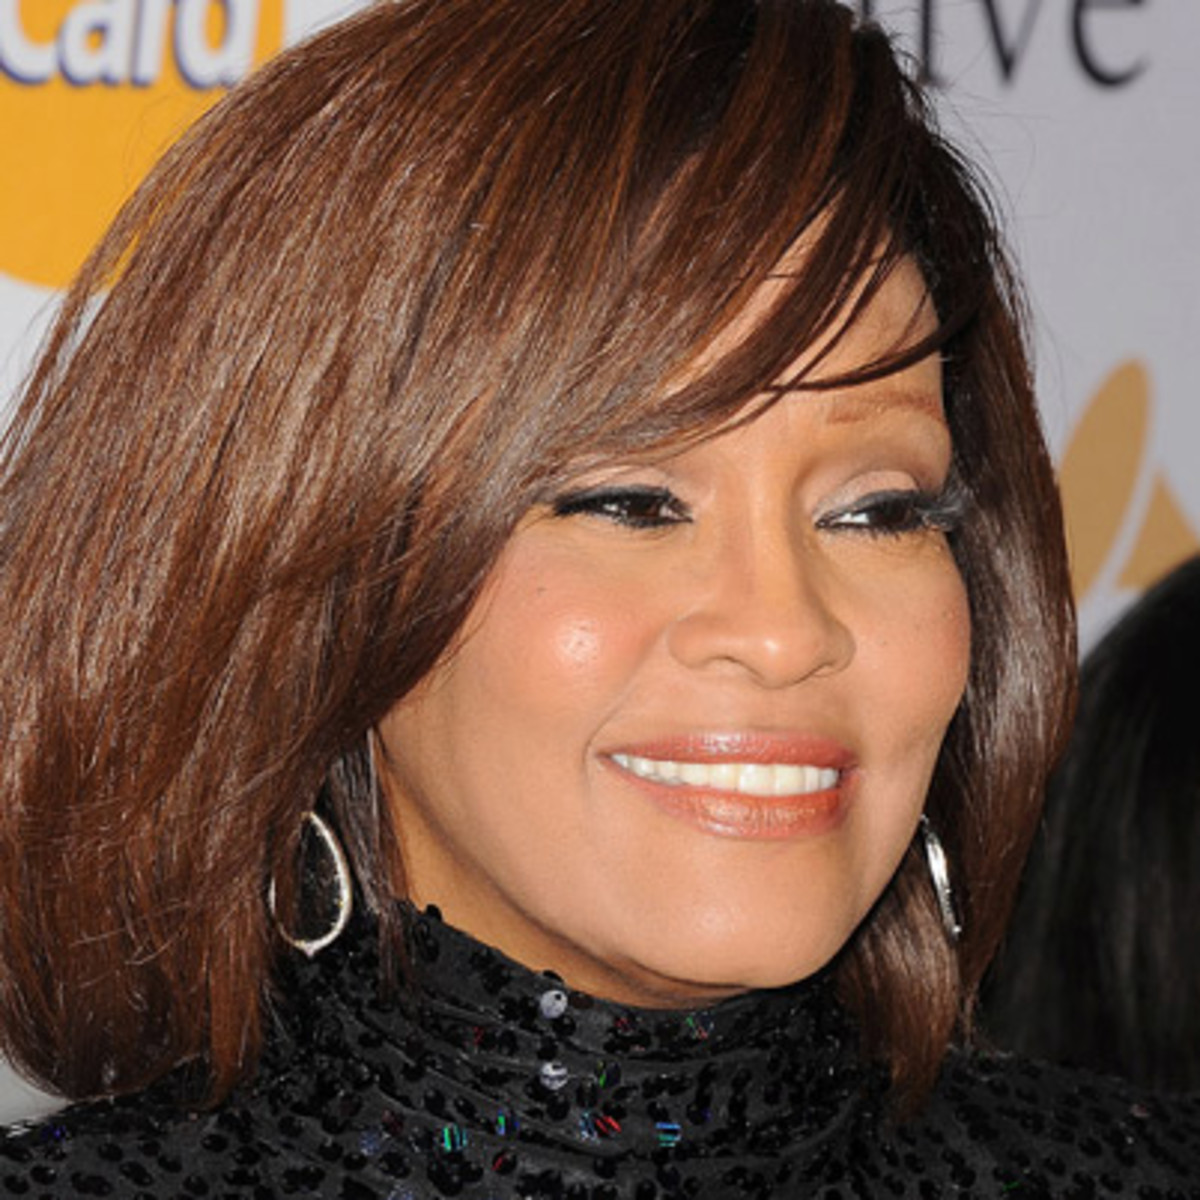 Whitney Houston - Songs, Daughter & Death - Biography